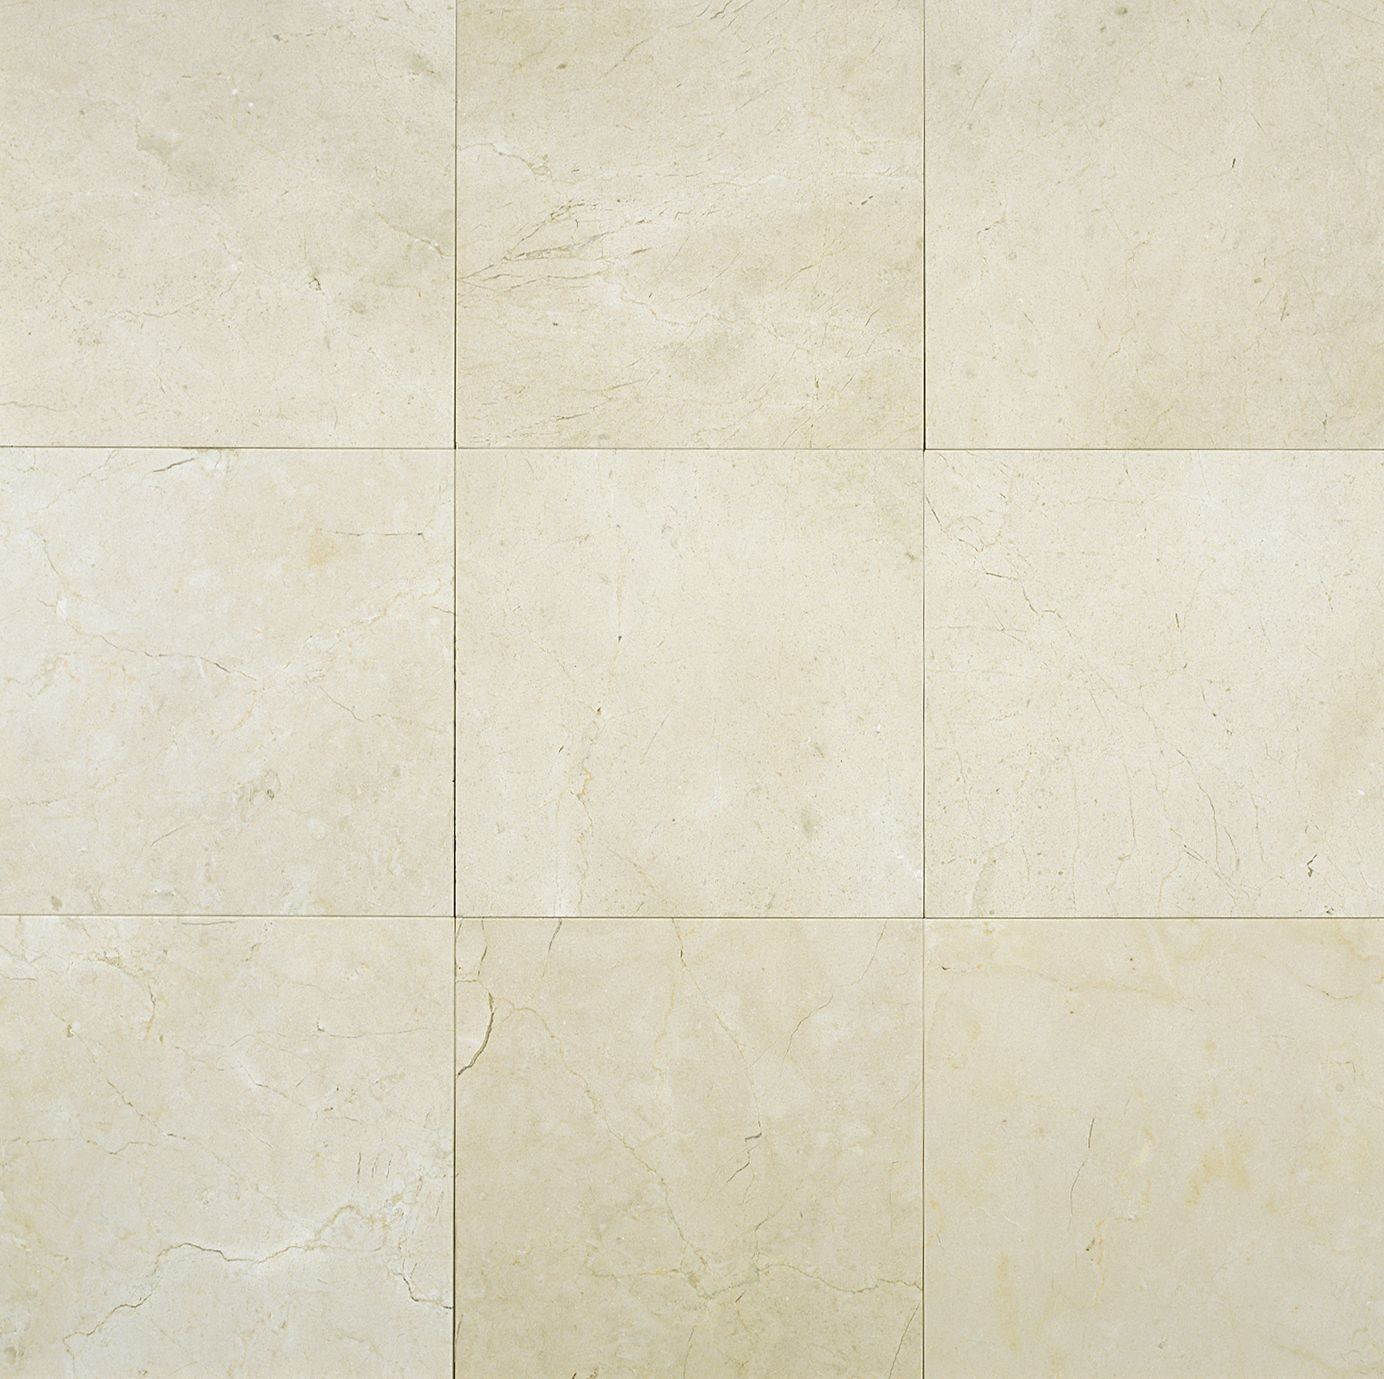 Crema marfil classico 6x6 marble tile polished transitional guest bathroom update pinterest Ceramic stone tile